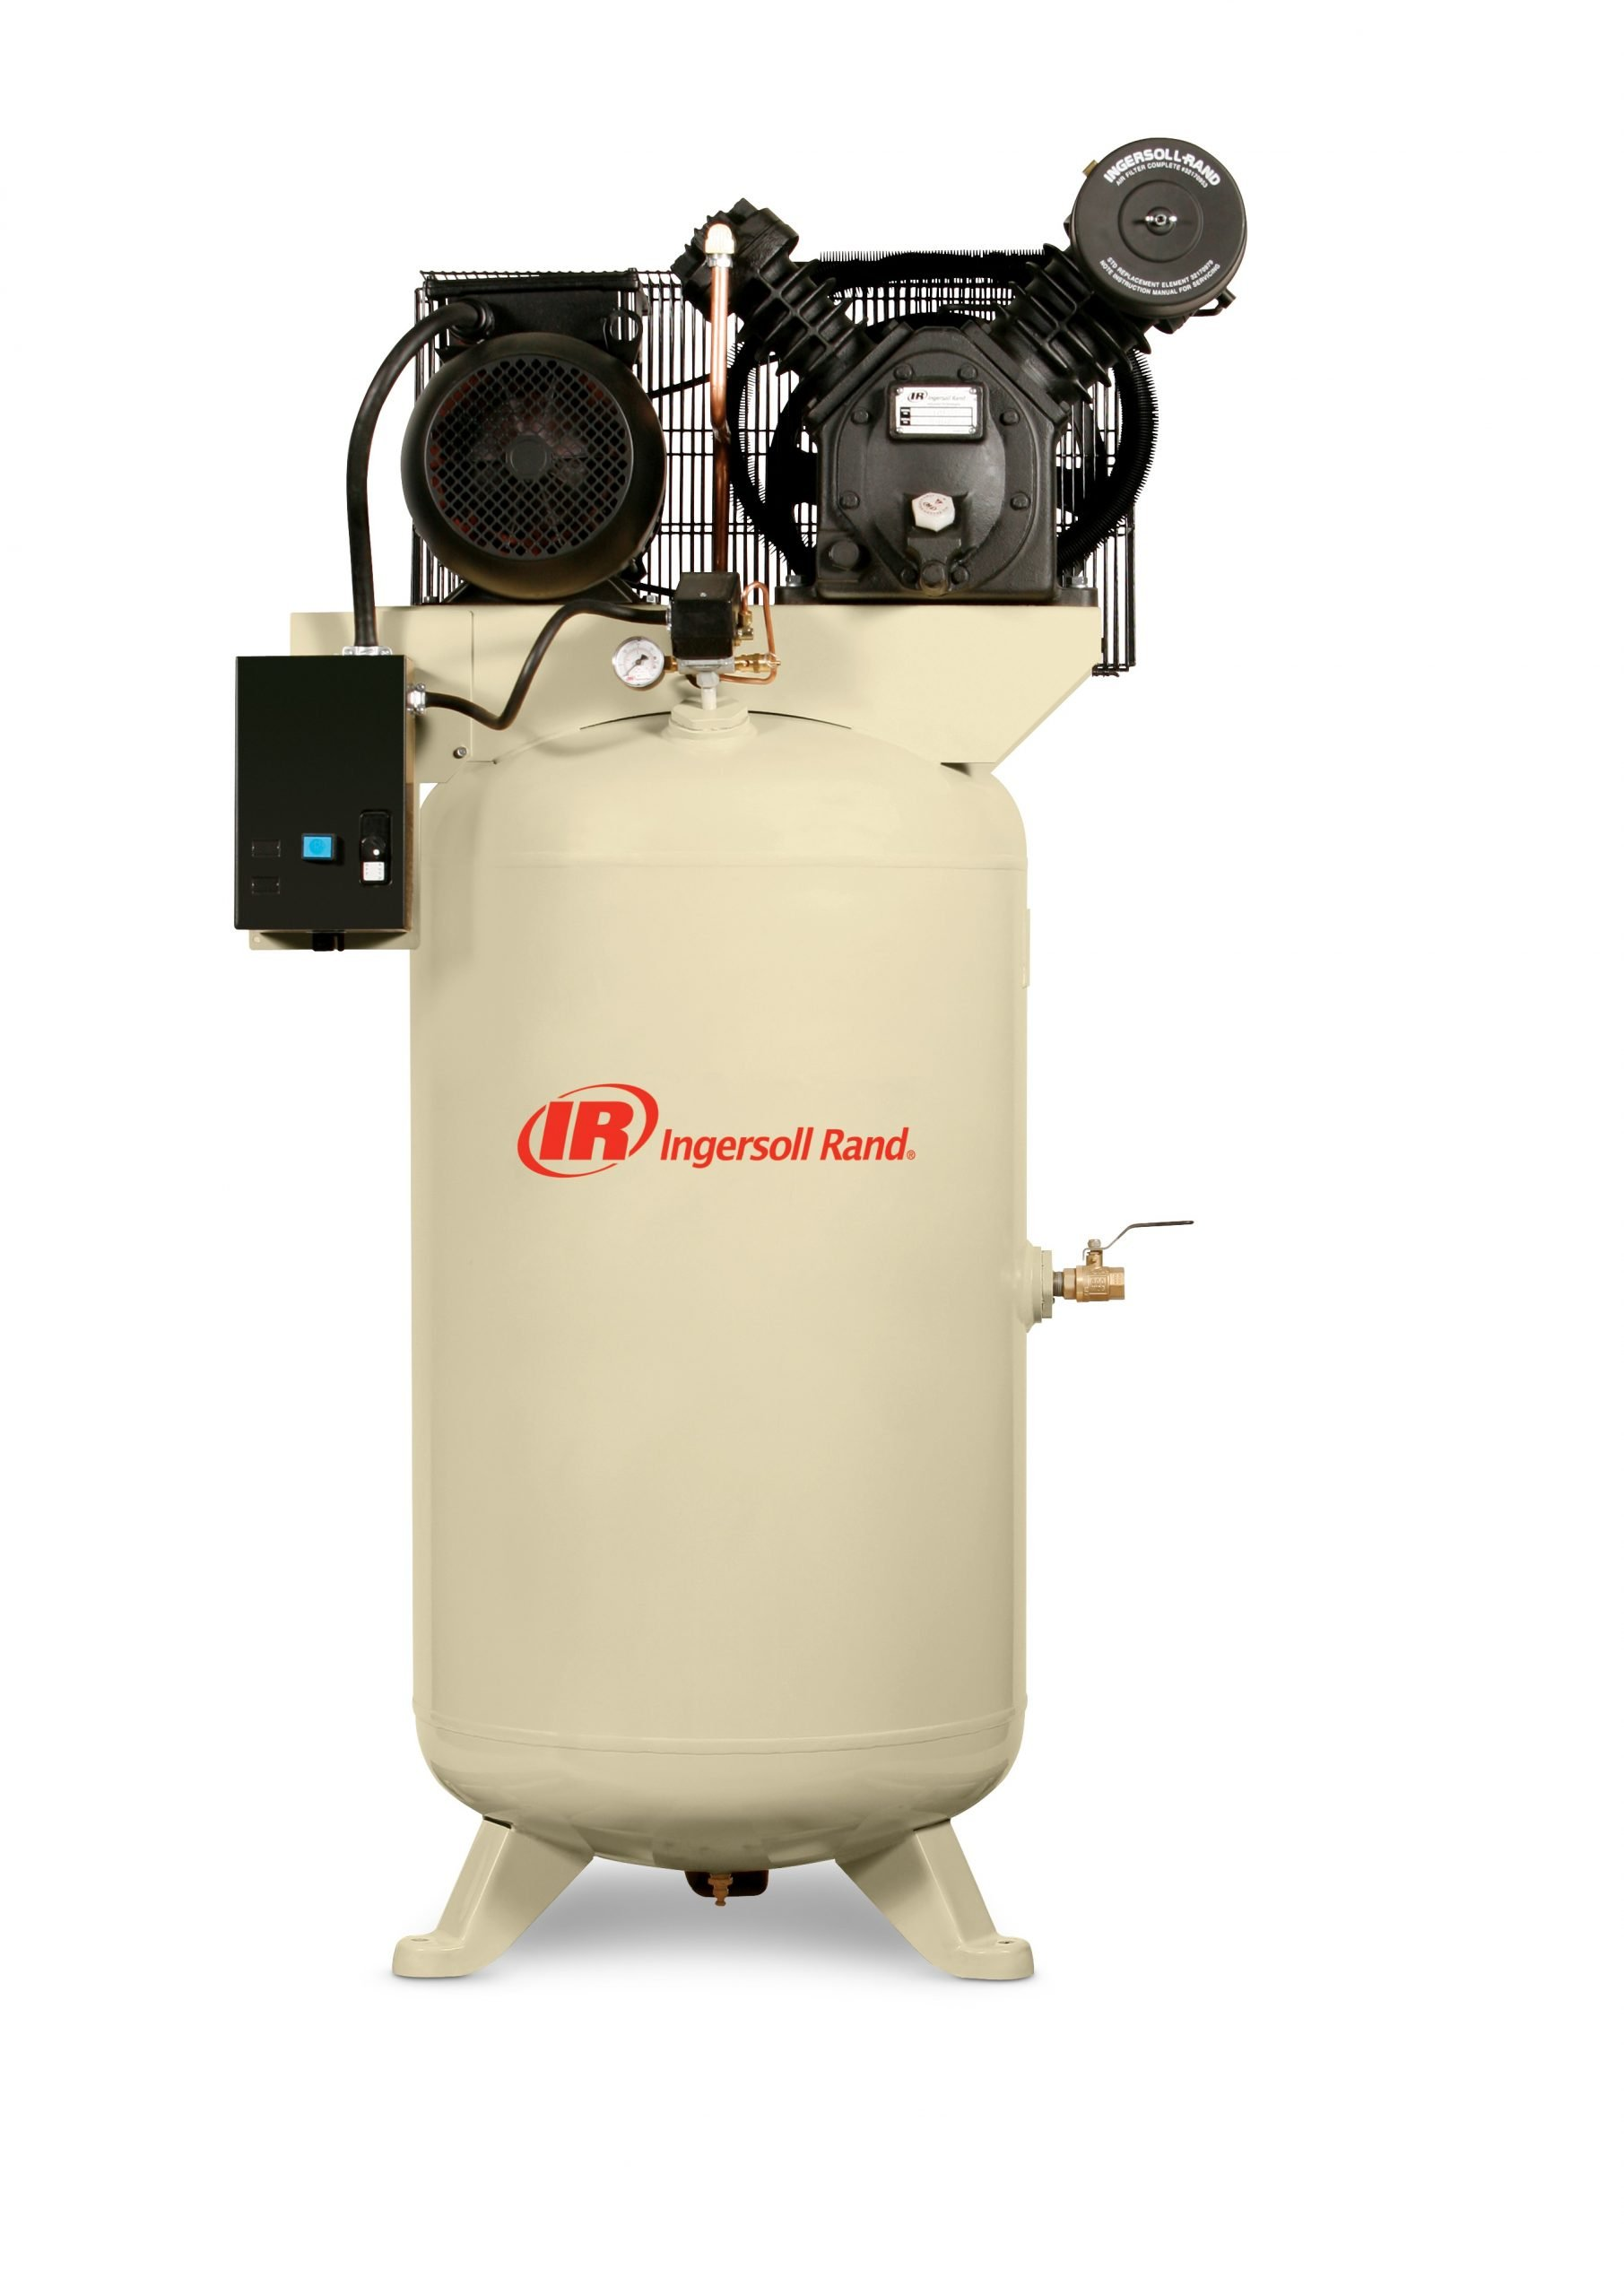 Ingersoll Rand 2340 Review – Best Stationary Air Compressor ?